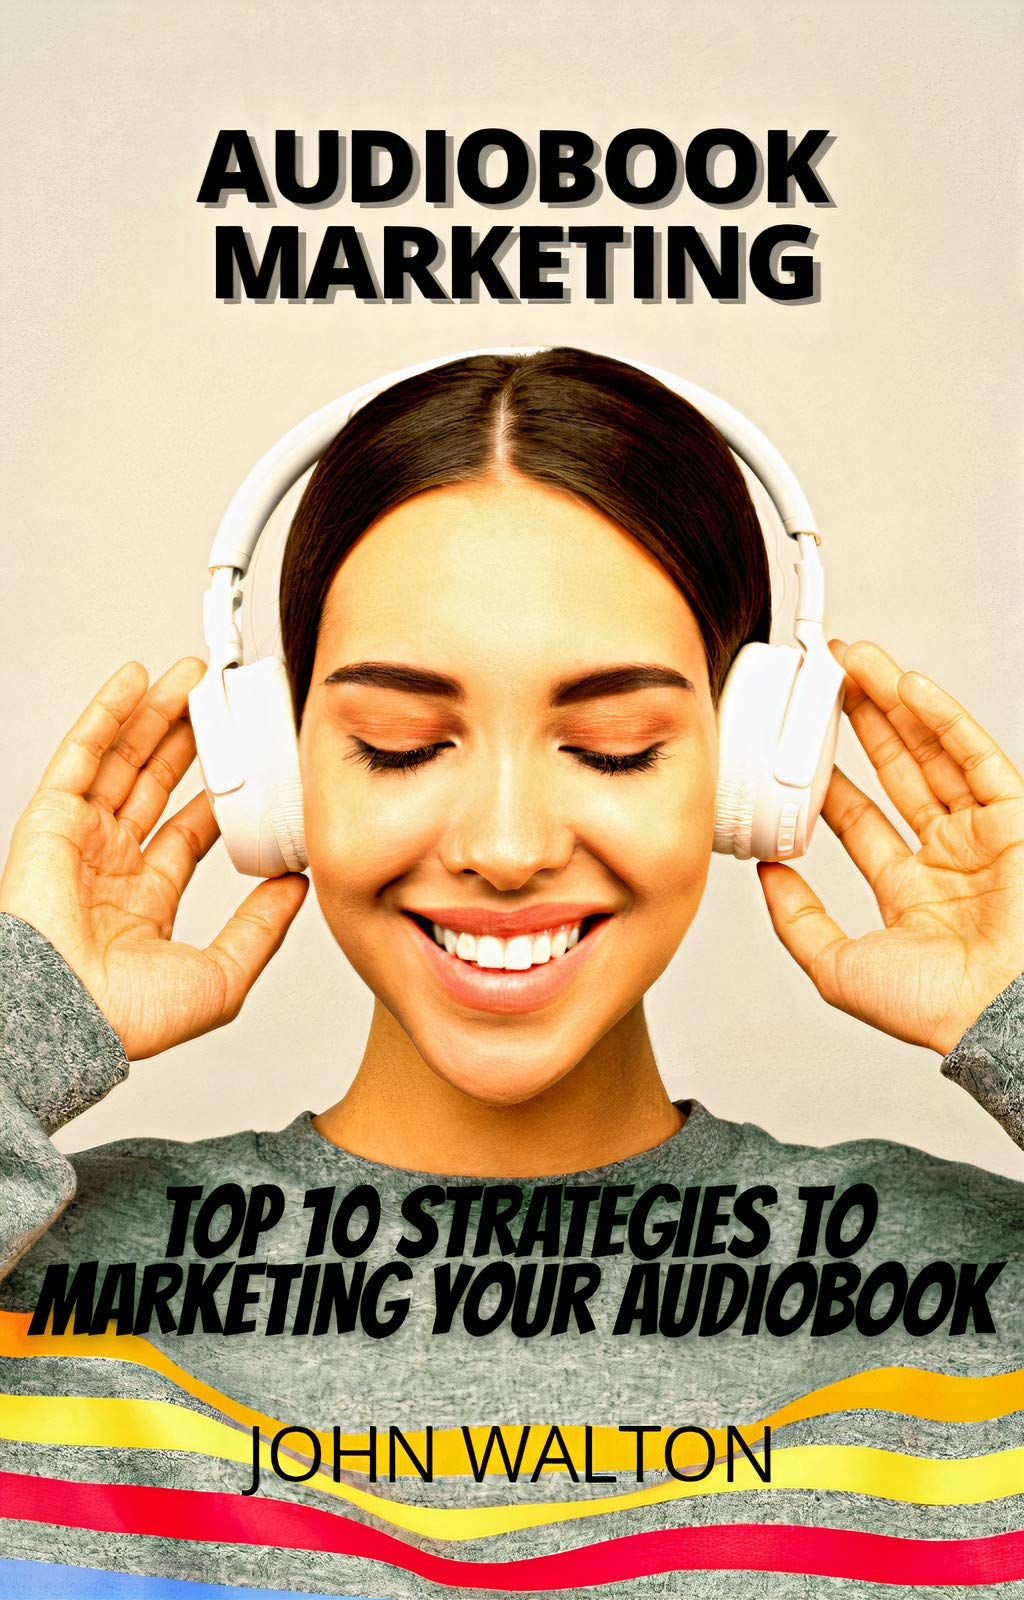 AUDIOBOOK MARKETING: TOP 10 STRATEGIES TO MARKETING YOUR BOOK